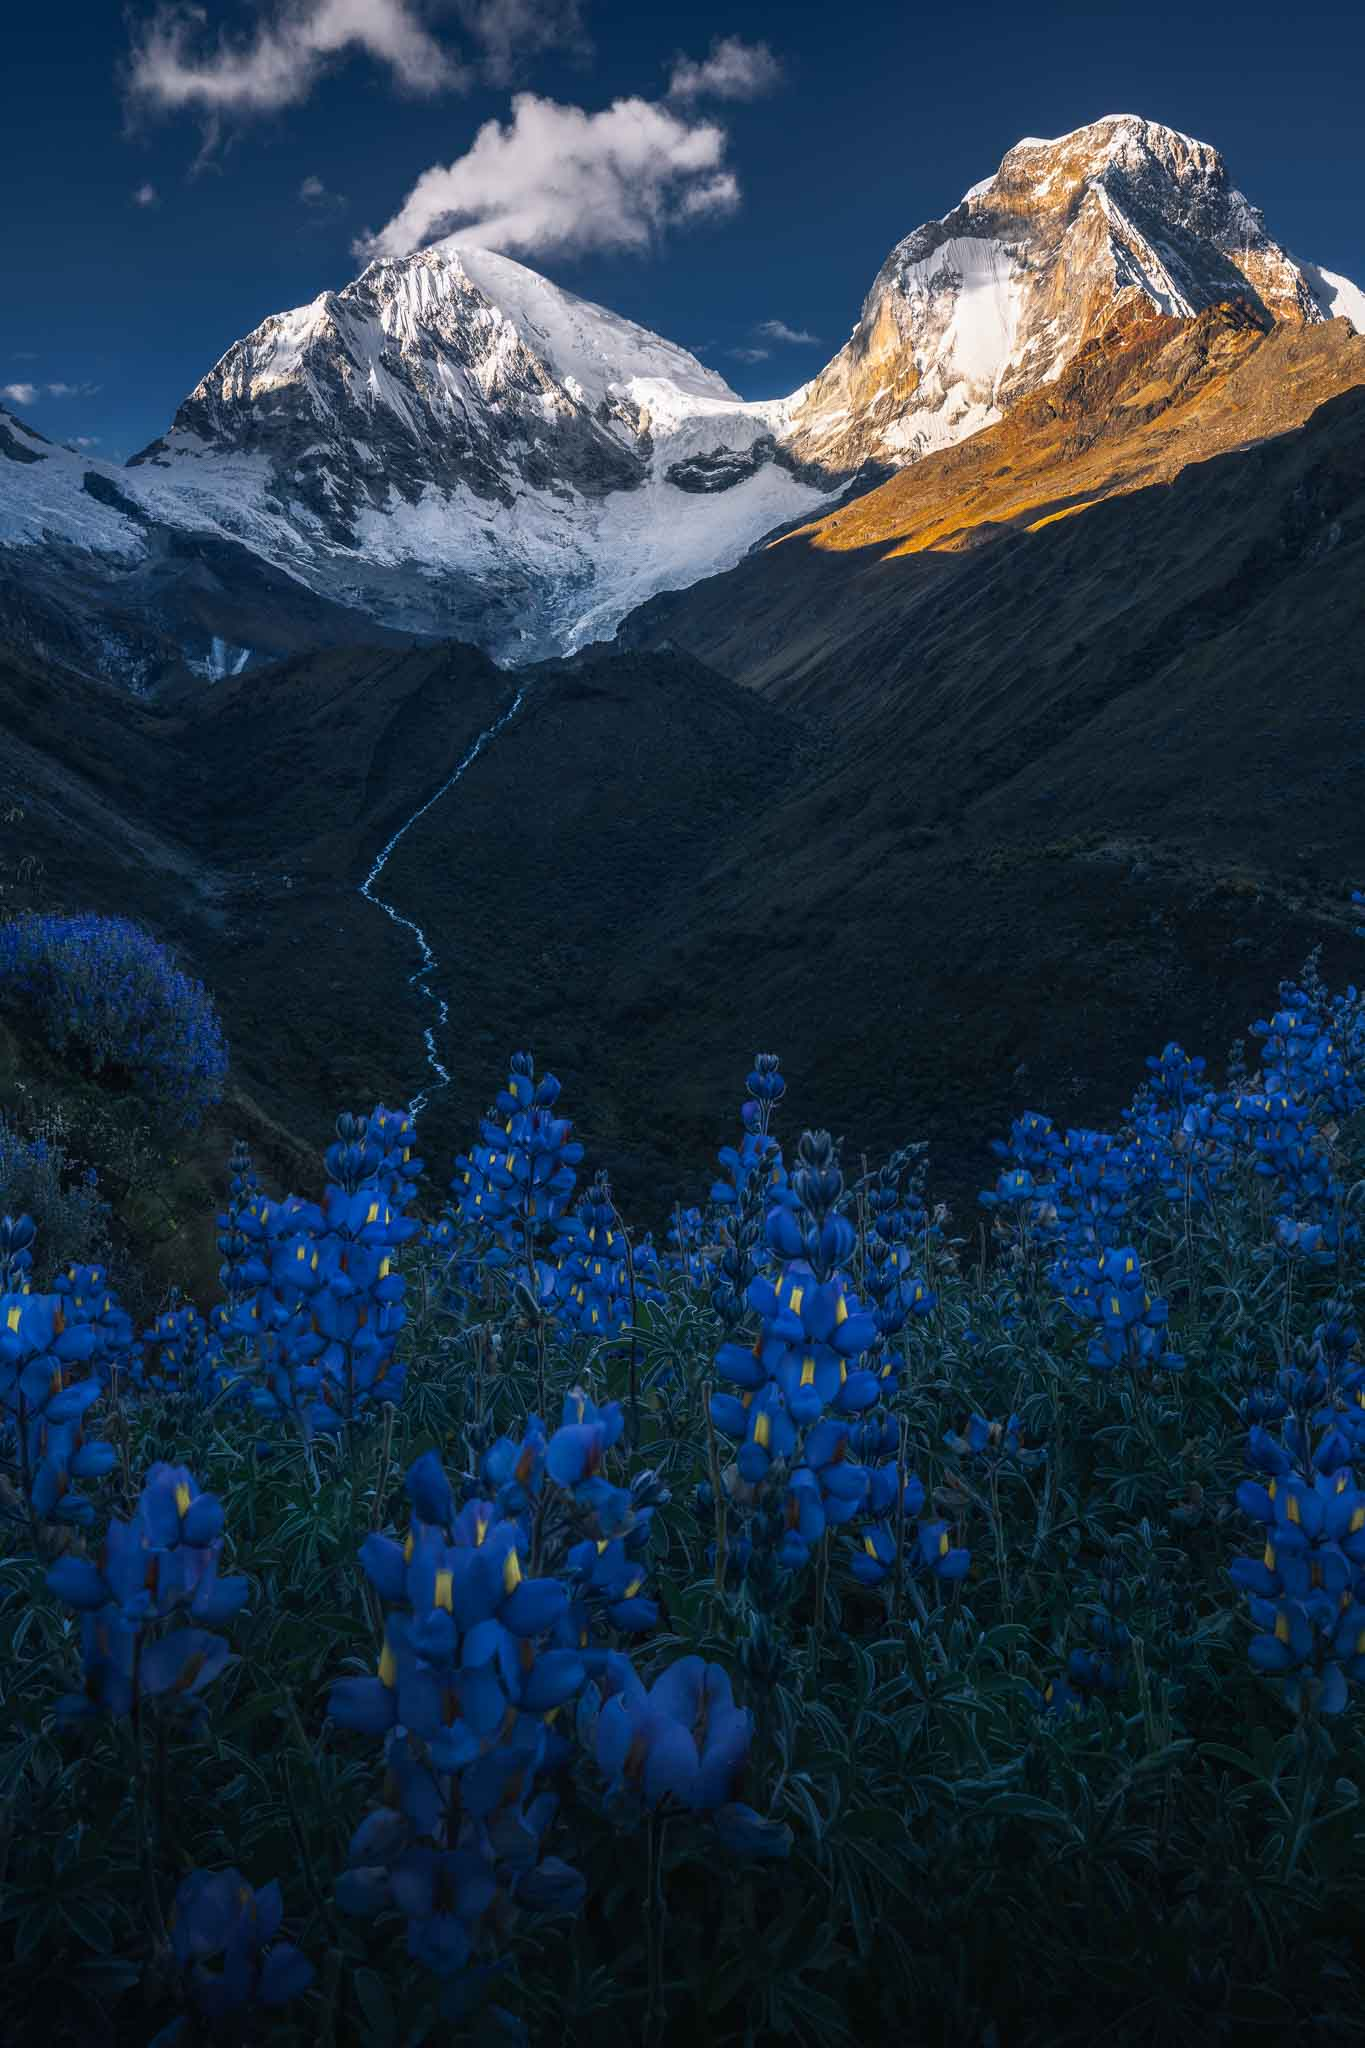 A blooming blue garden during the Peru Photo Tour